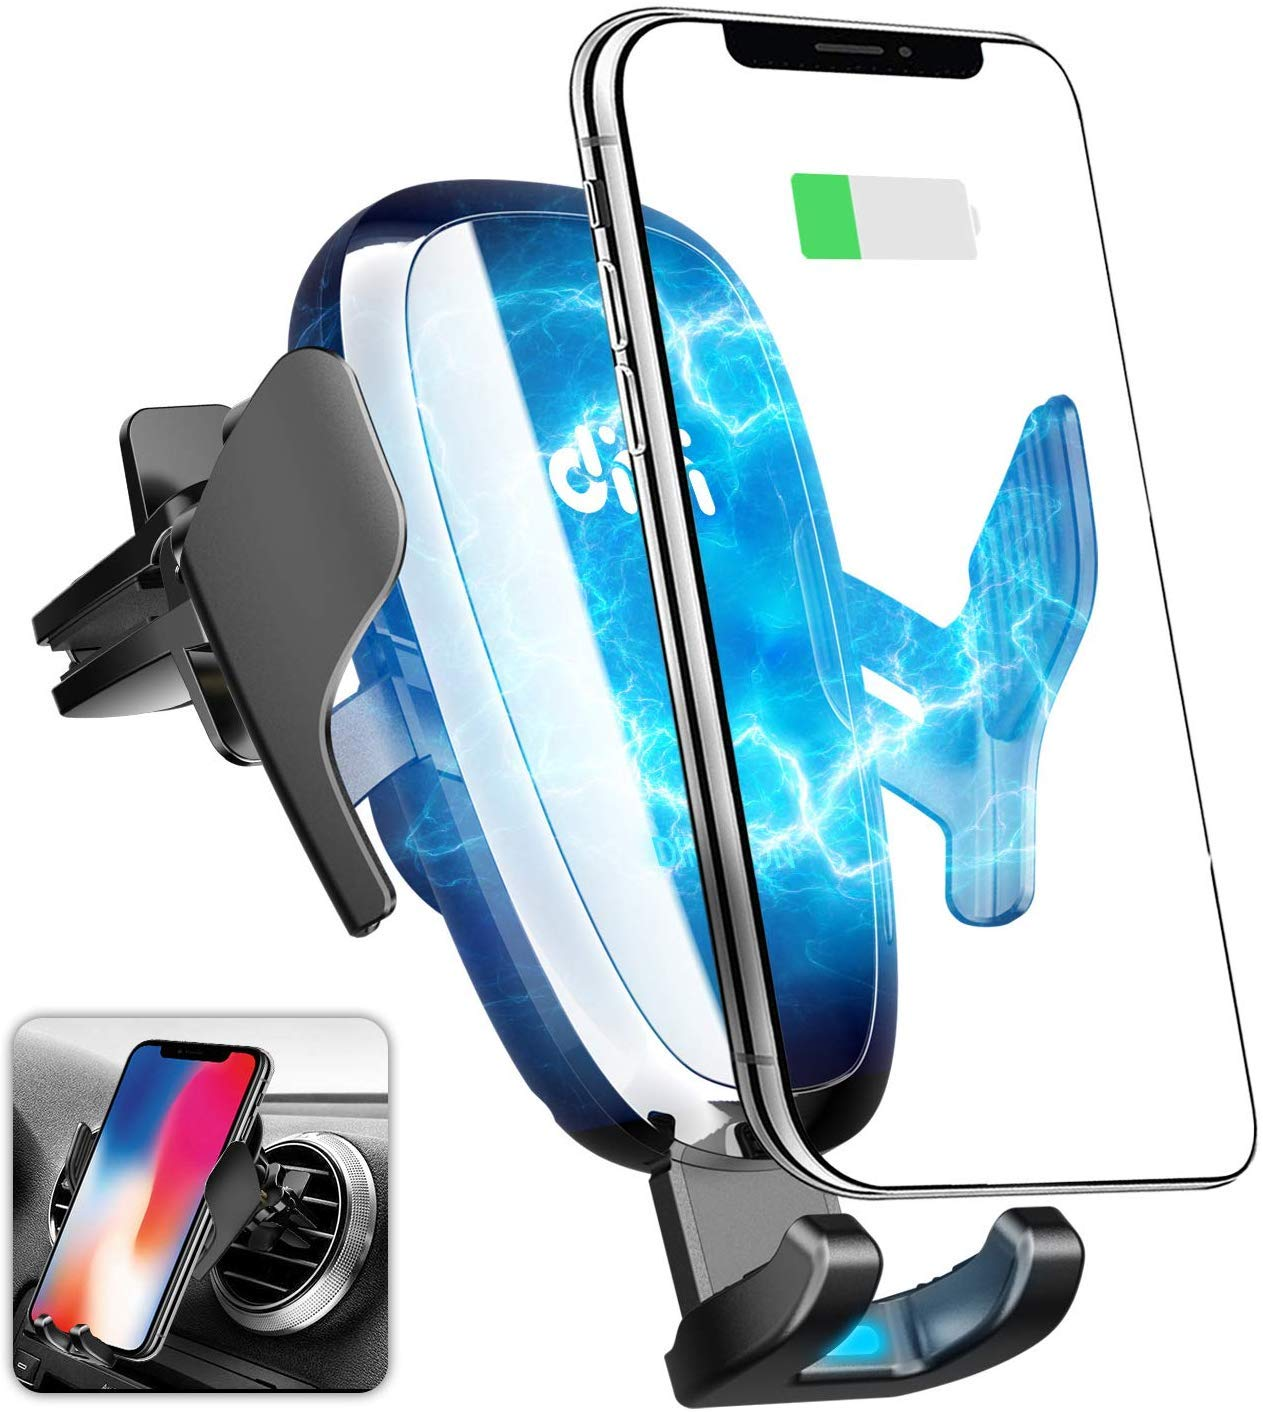 Air Vent Phone Holder Fast Car Cradles /& Mount 7.5W Compatible for iPhone Xs Max//Xs//XR//X// 8//8+ Wireless Car Charger 10W Compatible for Samsung Galaxy S9//S9+//S8//S8+//S10//S10+//Note 8//9